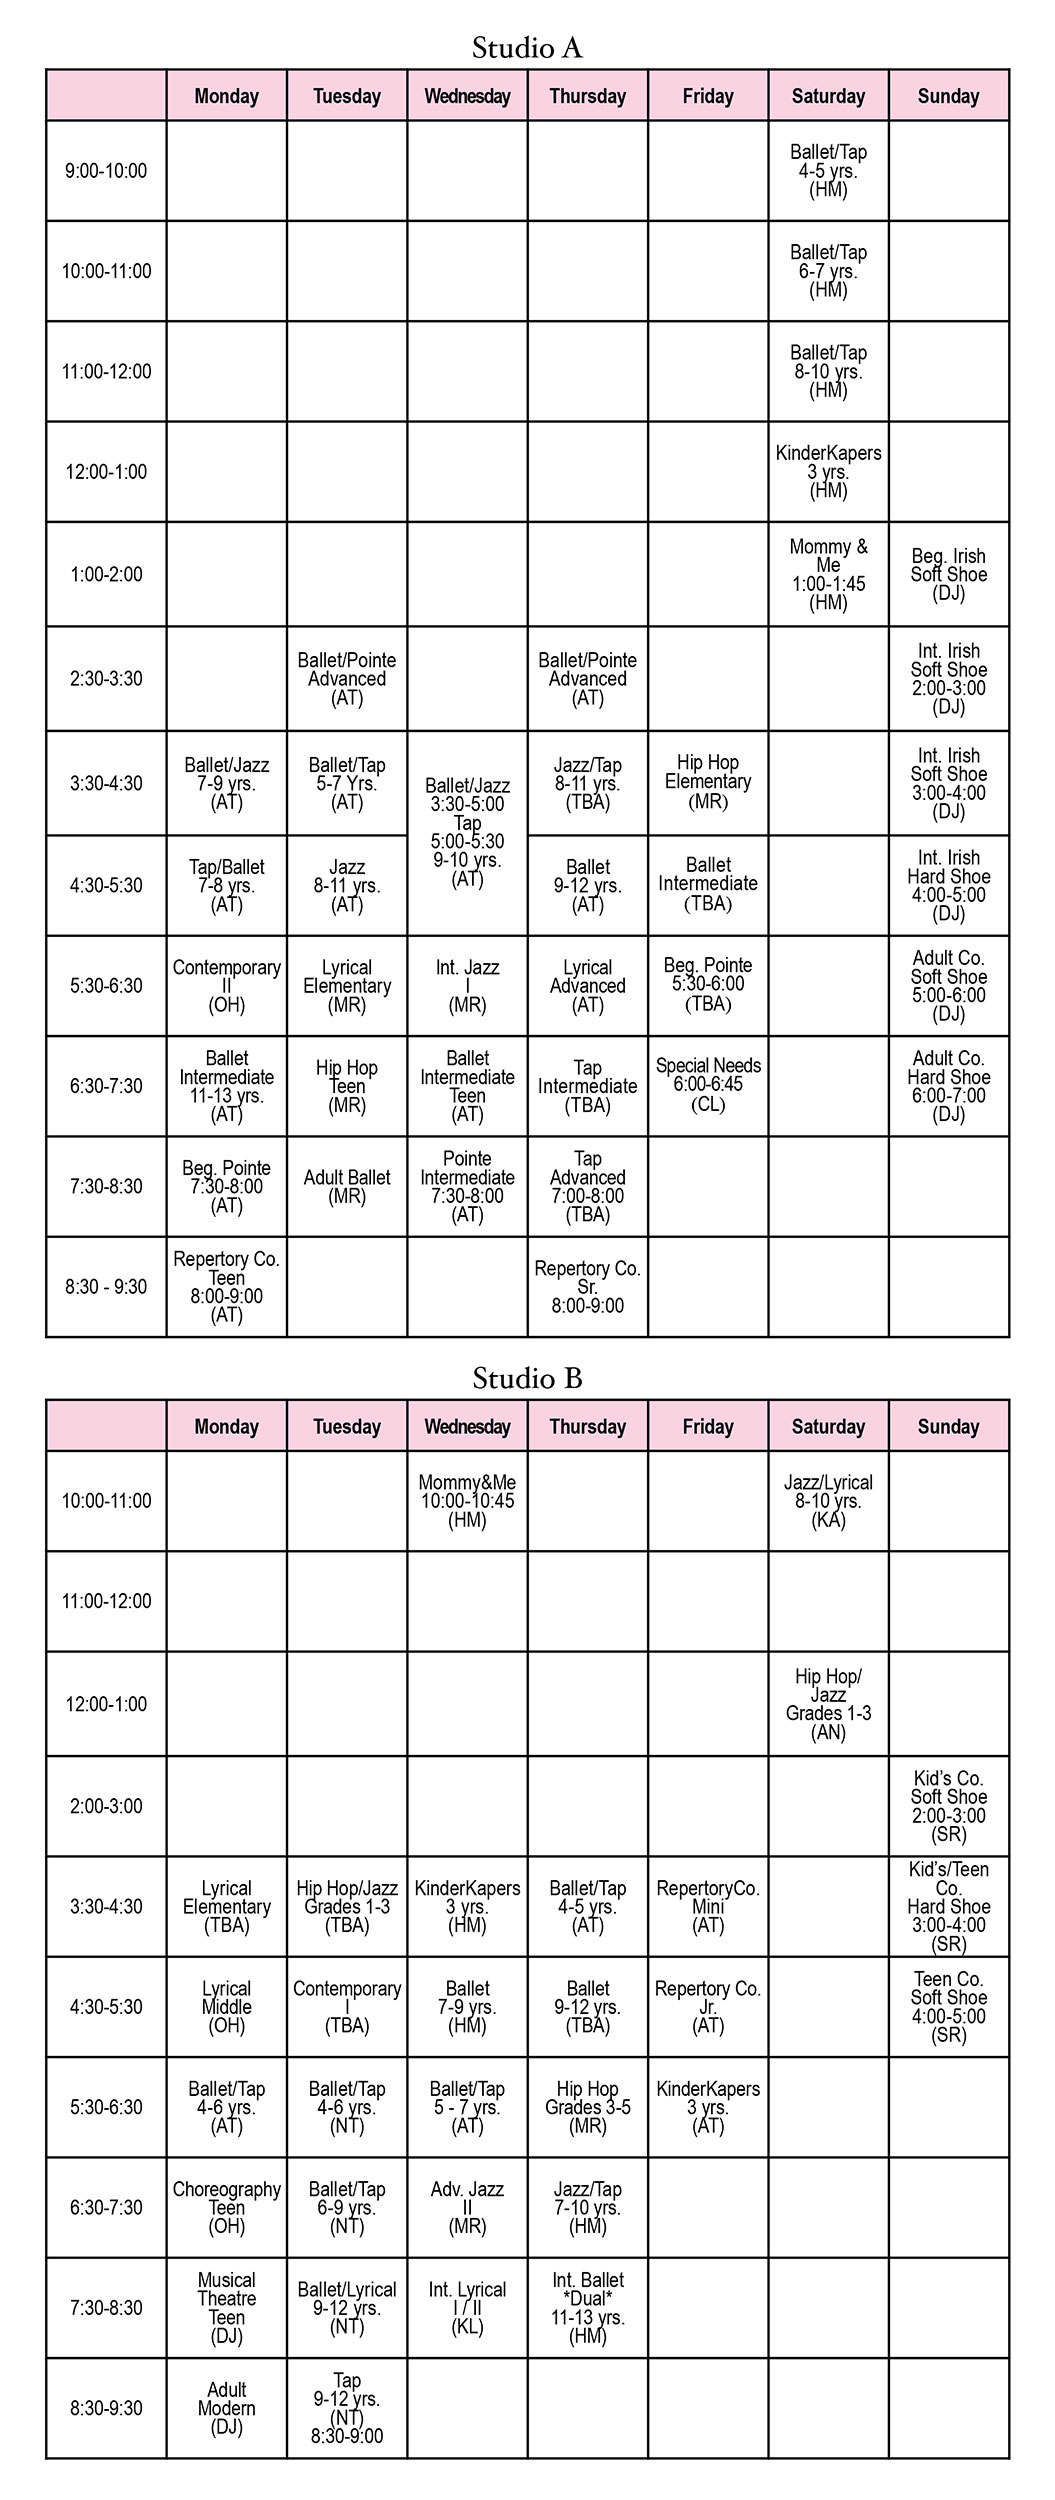 Dance class schedule for 2019-2020 at Sharon Davis School of Dance in Tallahassee, Florida.